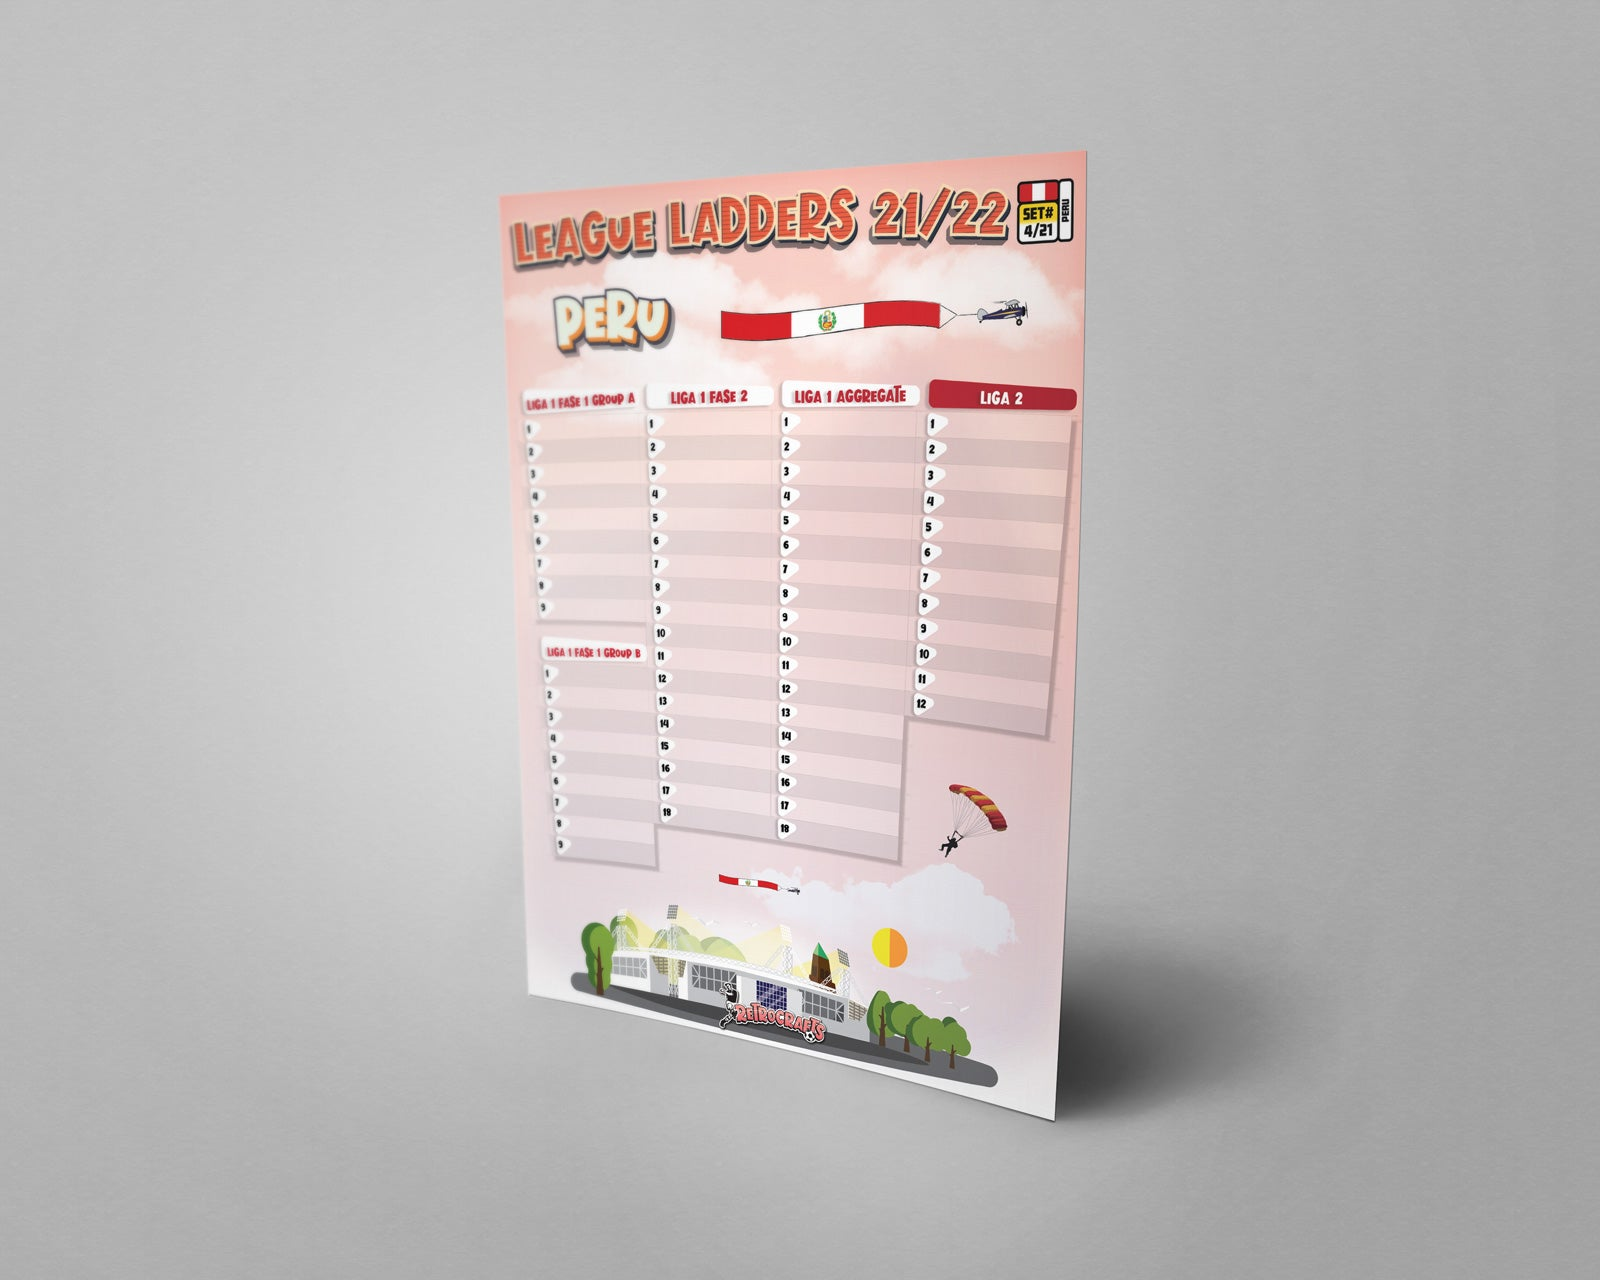 Peru Football League 2021/22 Season League Ladders Set#4/21